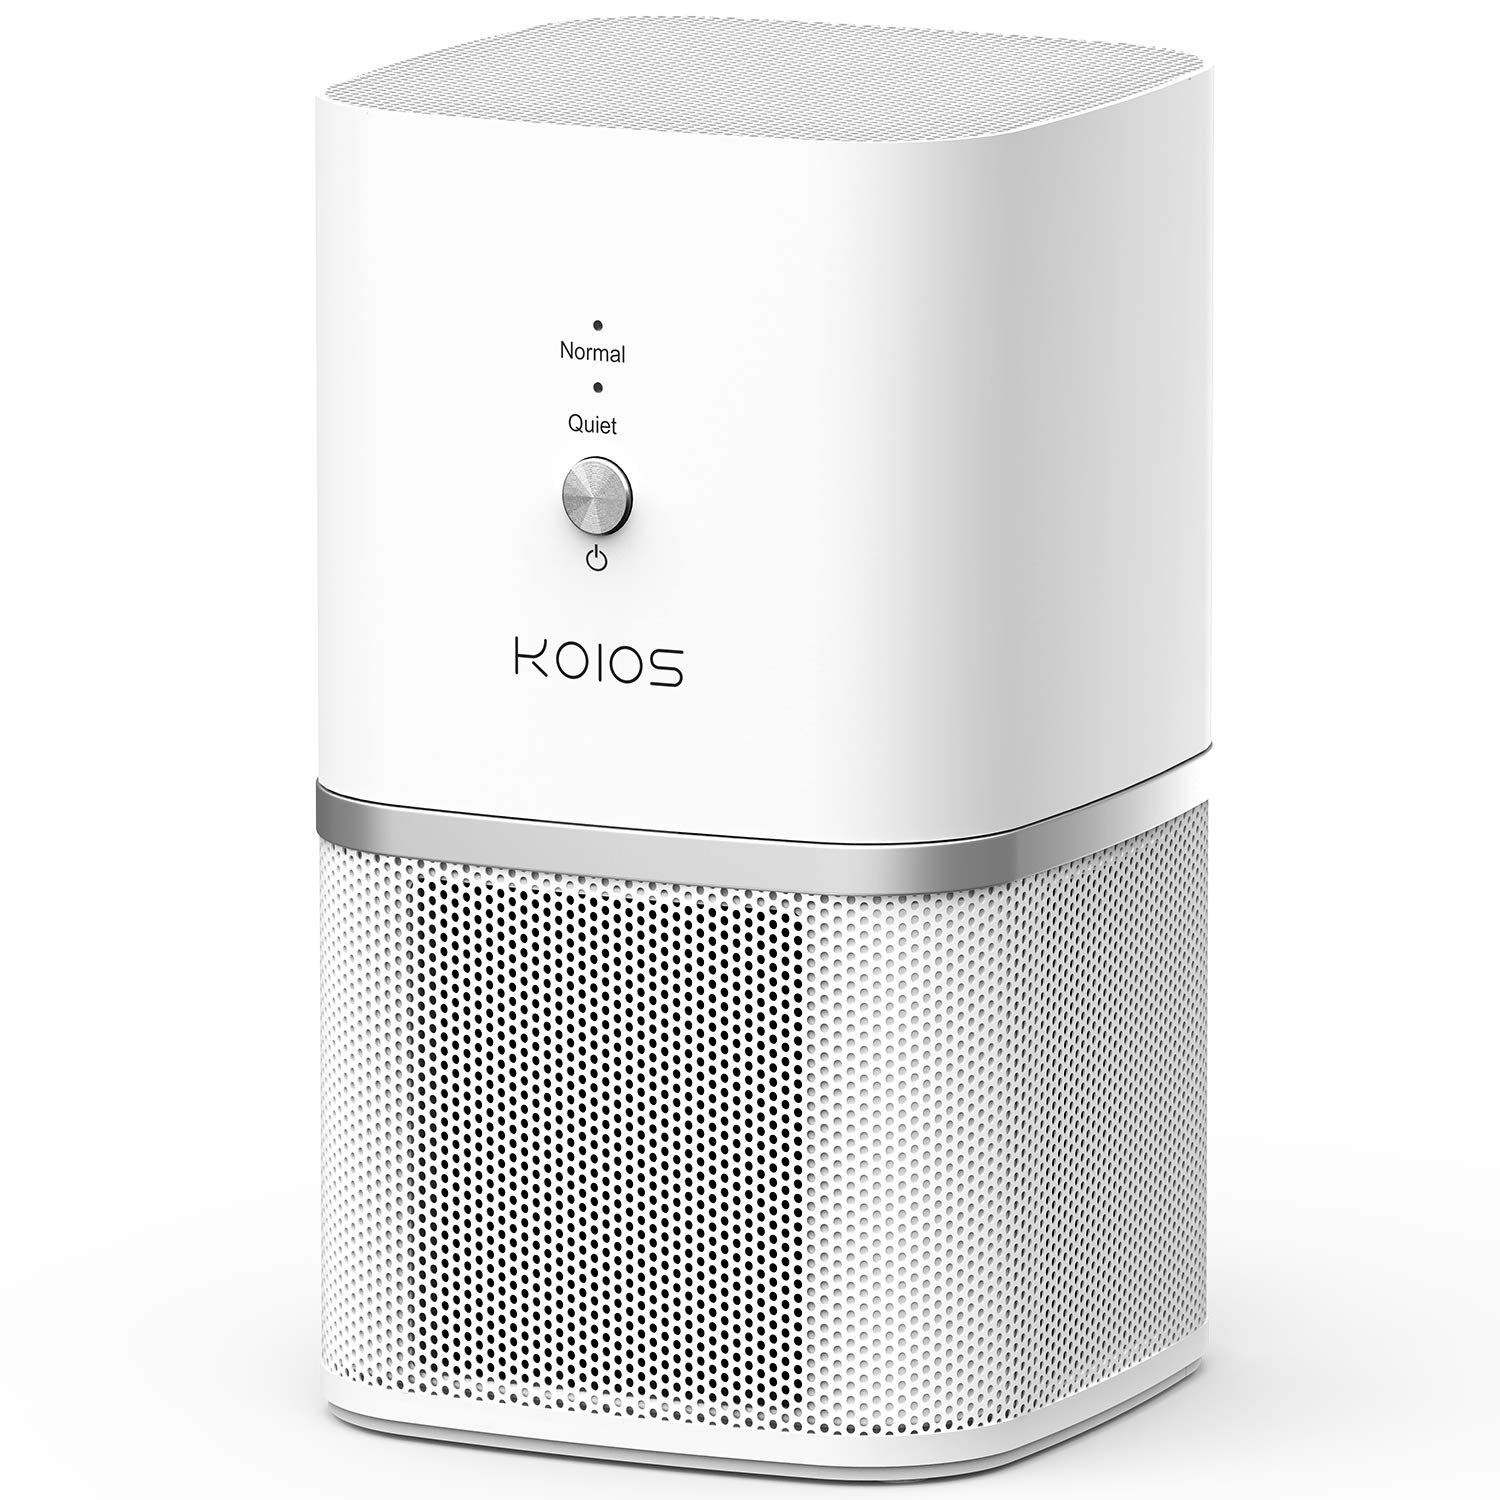 KOIOS Air Purifier, True HEPA Filter Air Purifier for Home, Offices Bedrooms, Air Cleaner for Allergies and Pets, Smokers, Mold, Pollen, Dust, Whisper-Quiet, 100 Ozone-Free